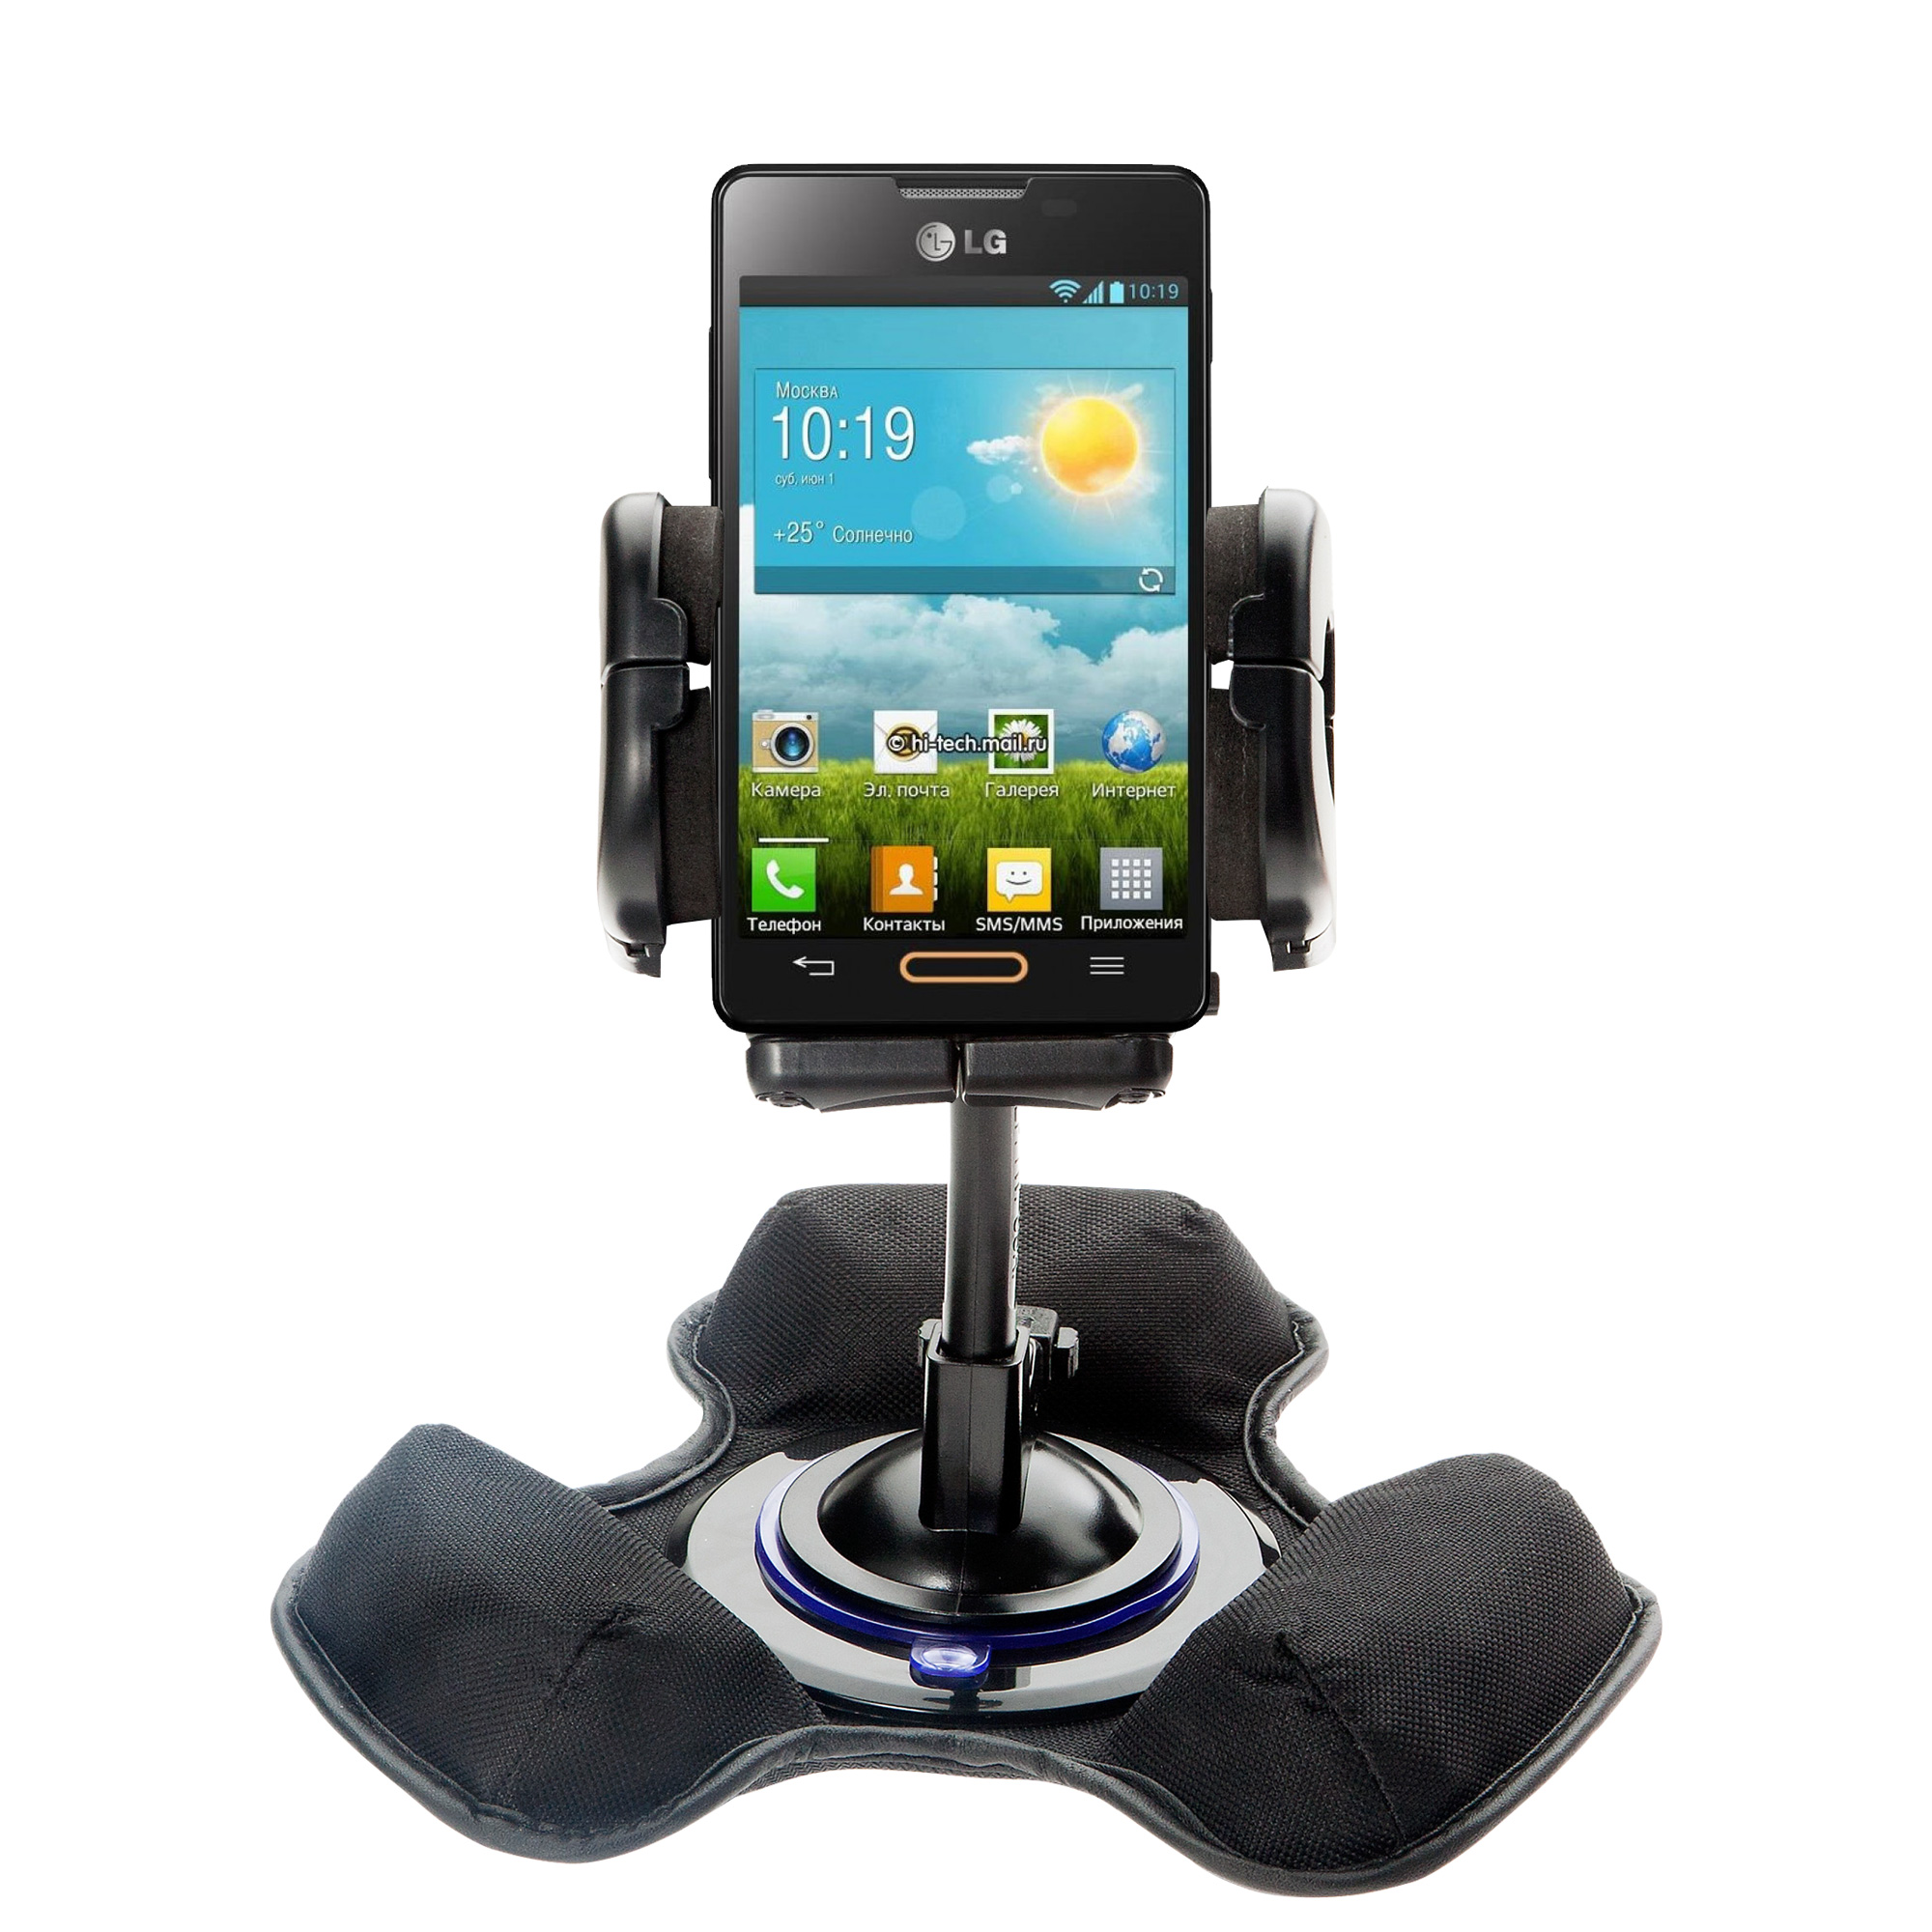 Dash and Windshield Holder compatible with the LG Optimus L4 II